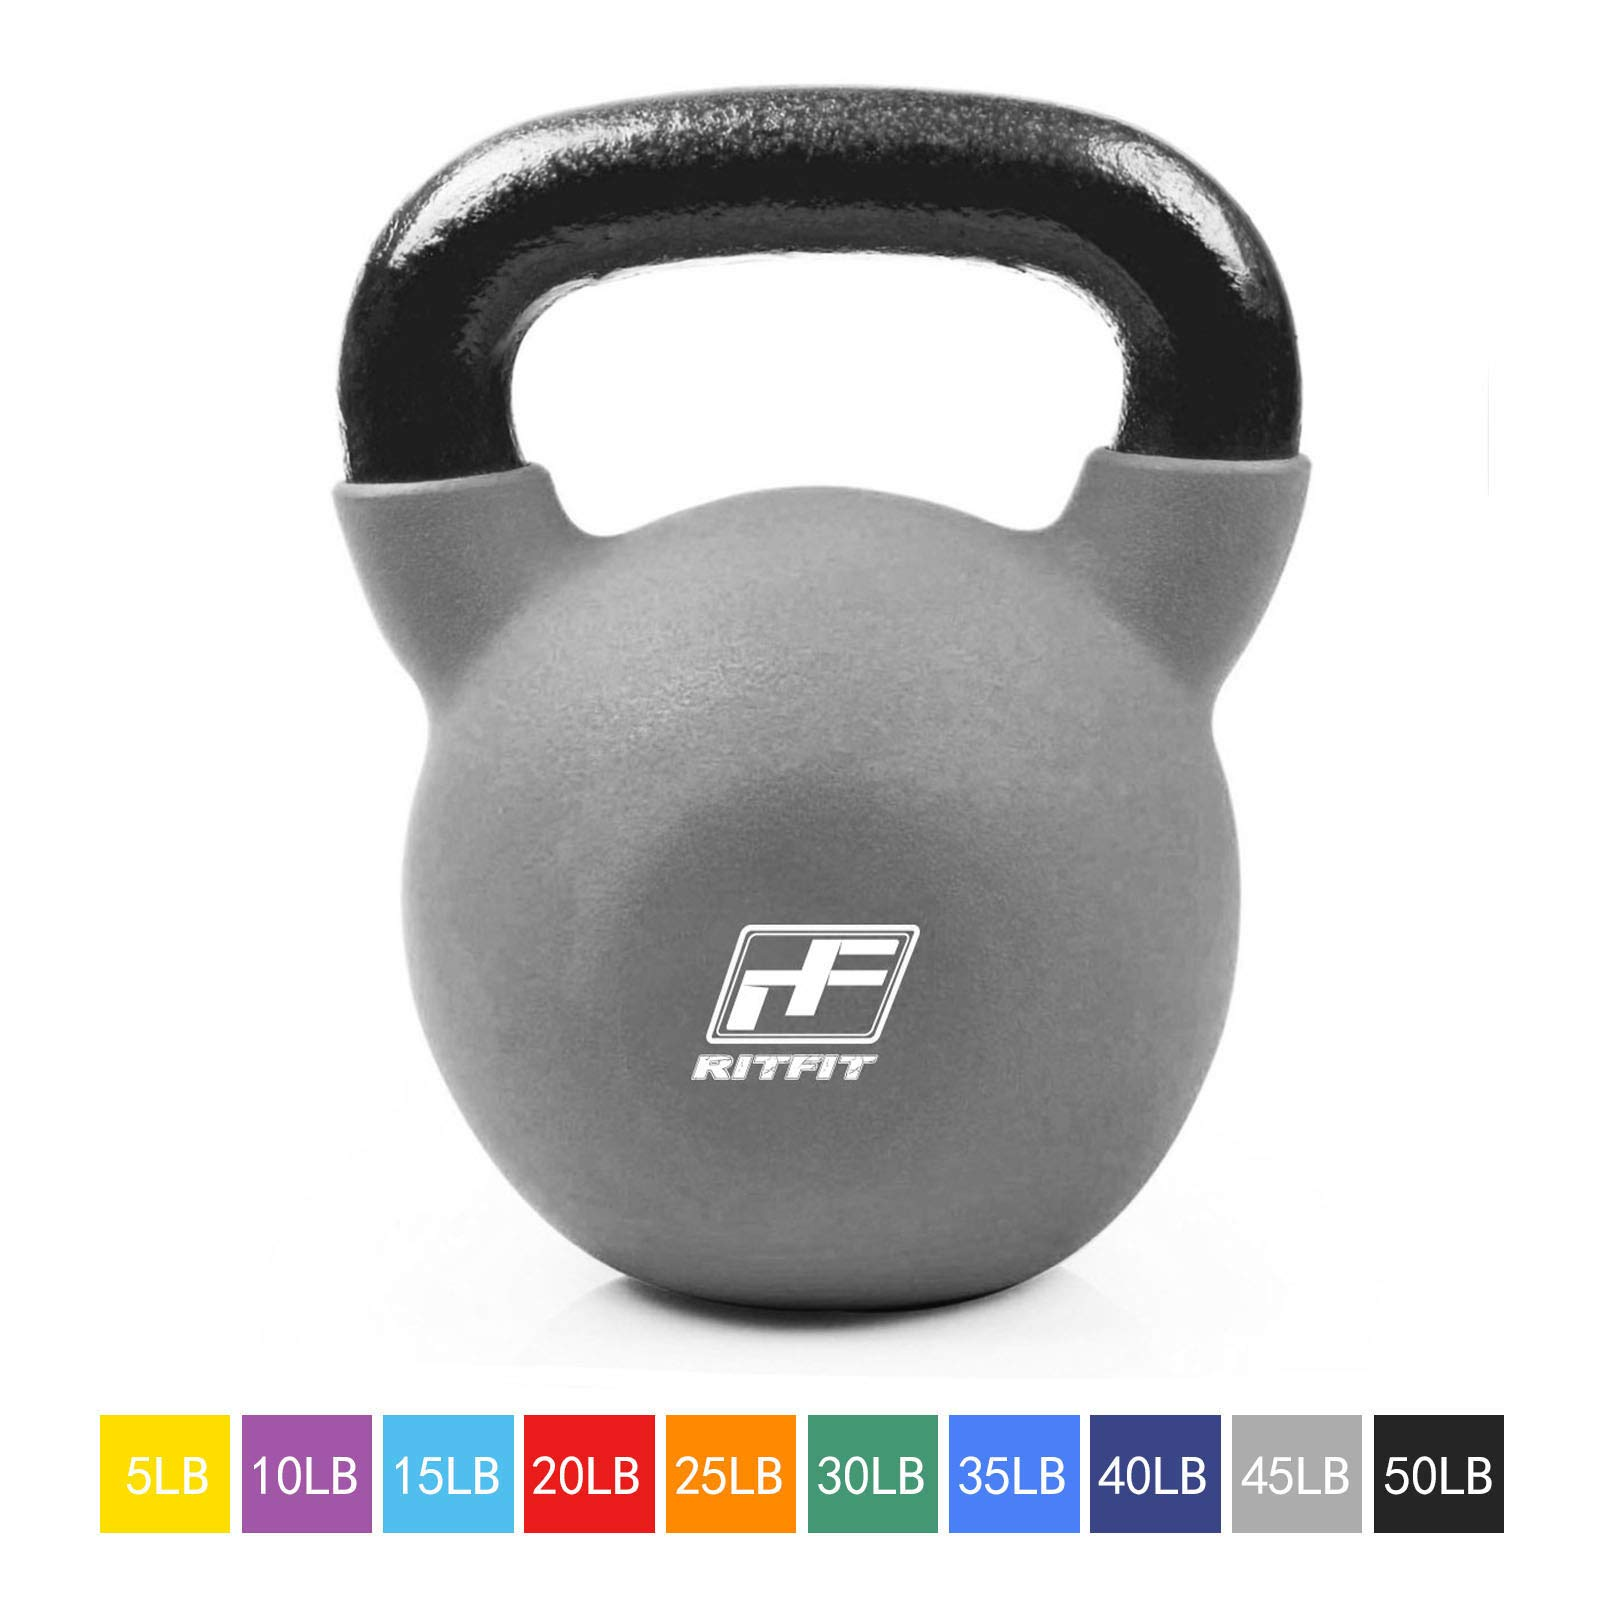 RitFit Neoprene Coated Solid Cast Iron Kettlebell - Great for Full Body Workout, Cross-Training, Weight Loss & Strength Training (5/10/15/20/25/30/35/40/45/50 LB) (45LB(Gray)